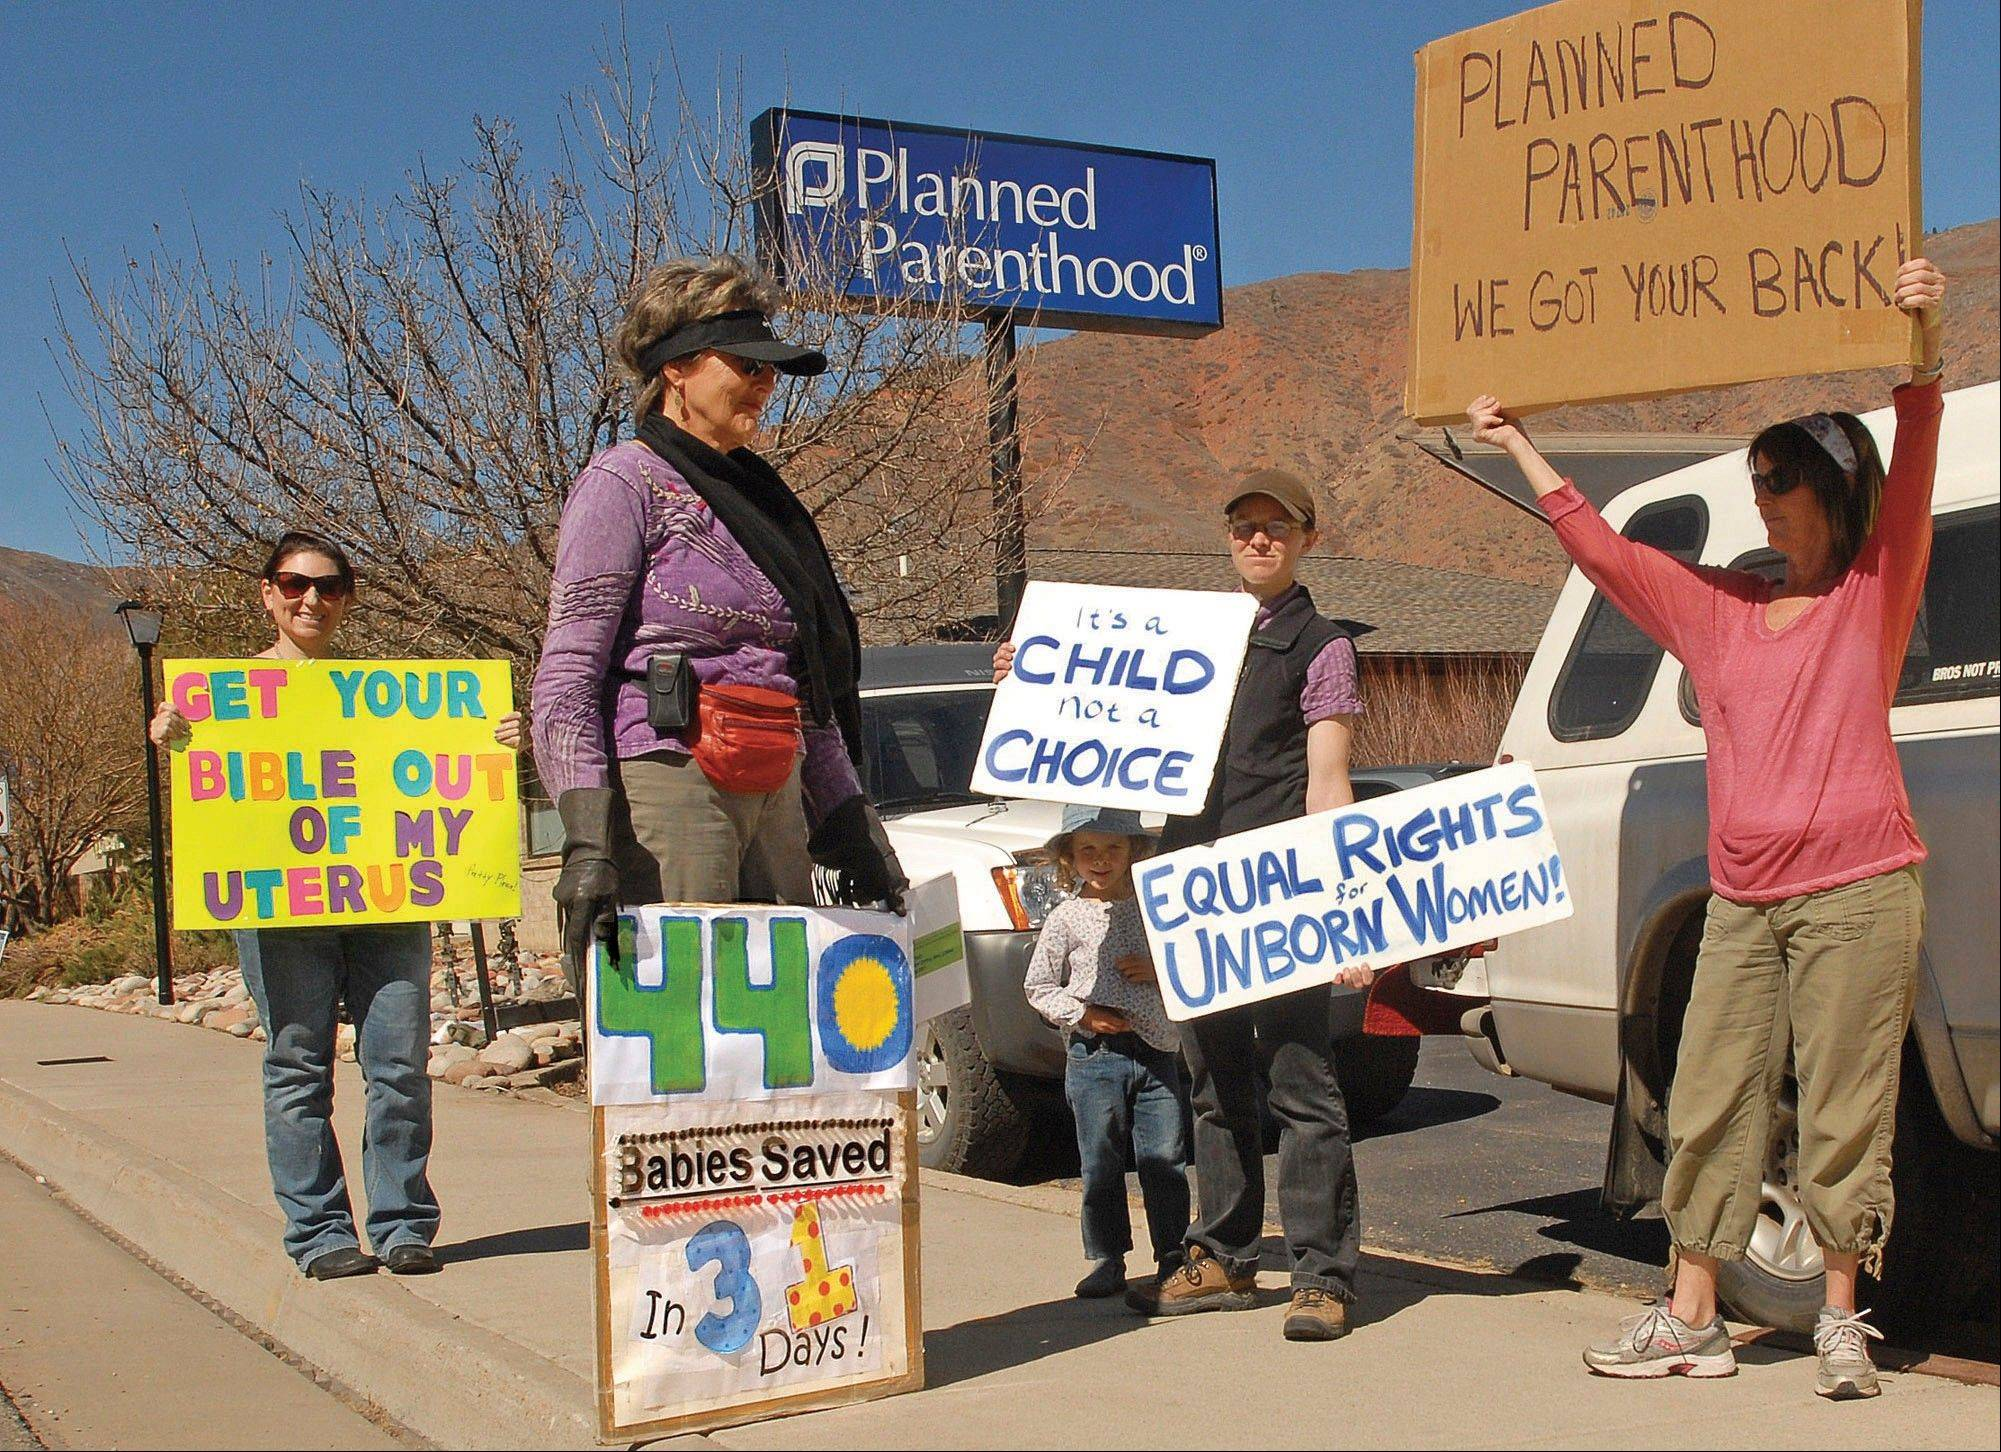 Supporters from both sides of the abortion issue share the sidewalk next to the Planned Parenthhood clinic in West Glenwood, Colo.